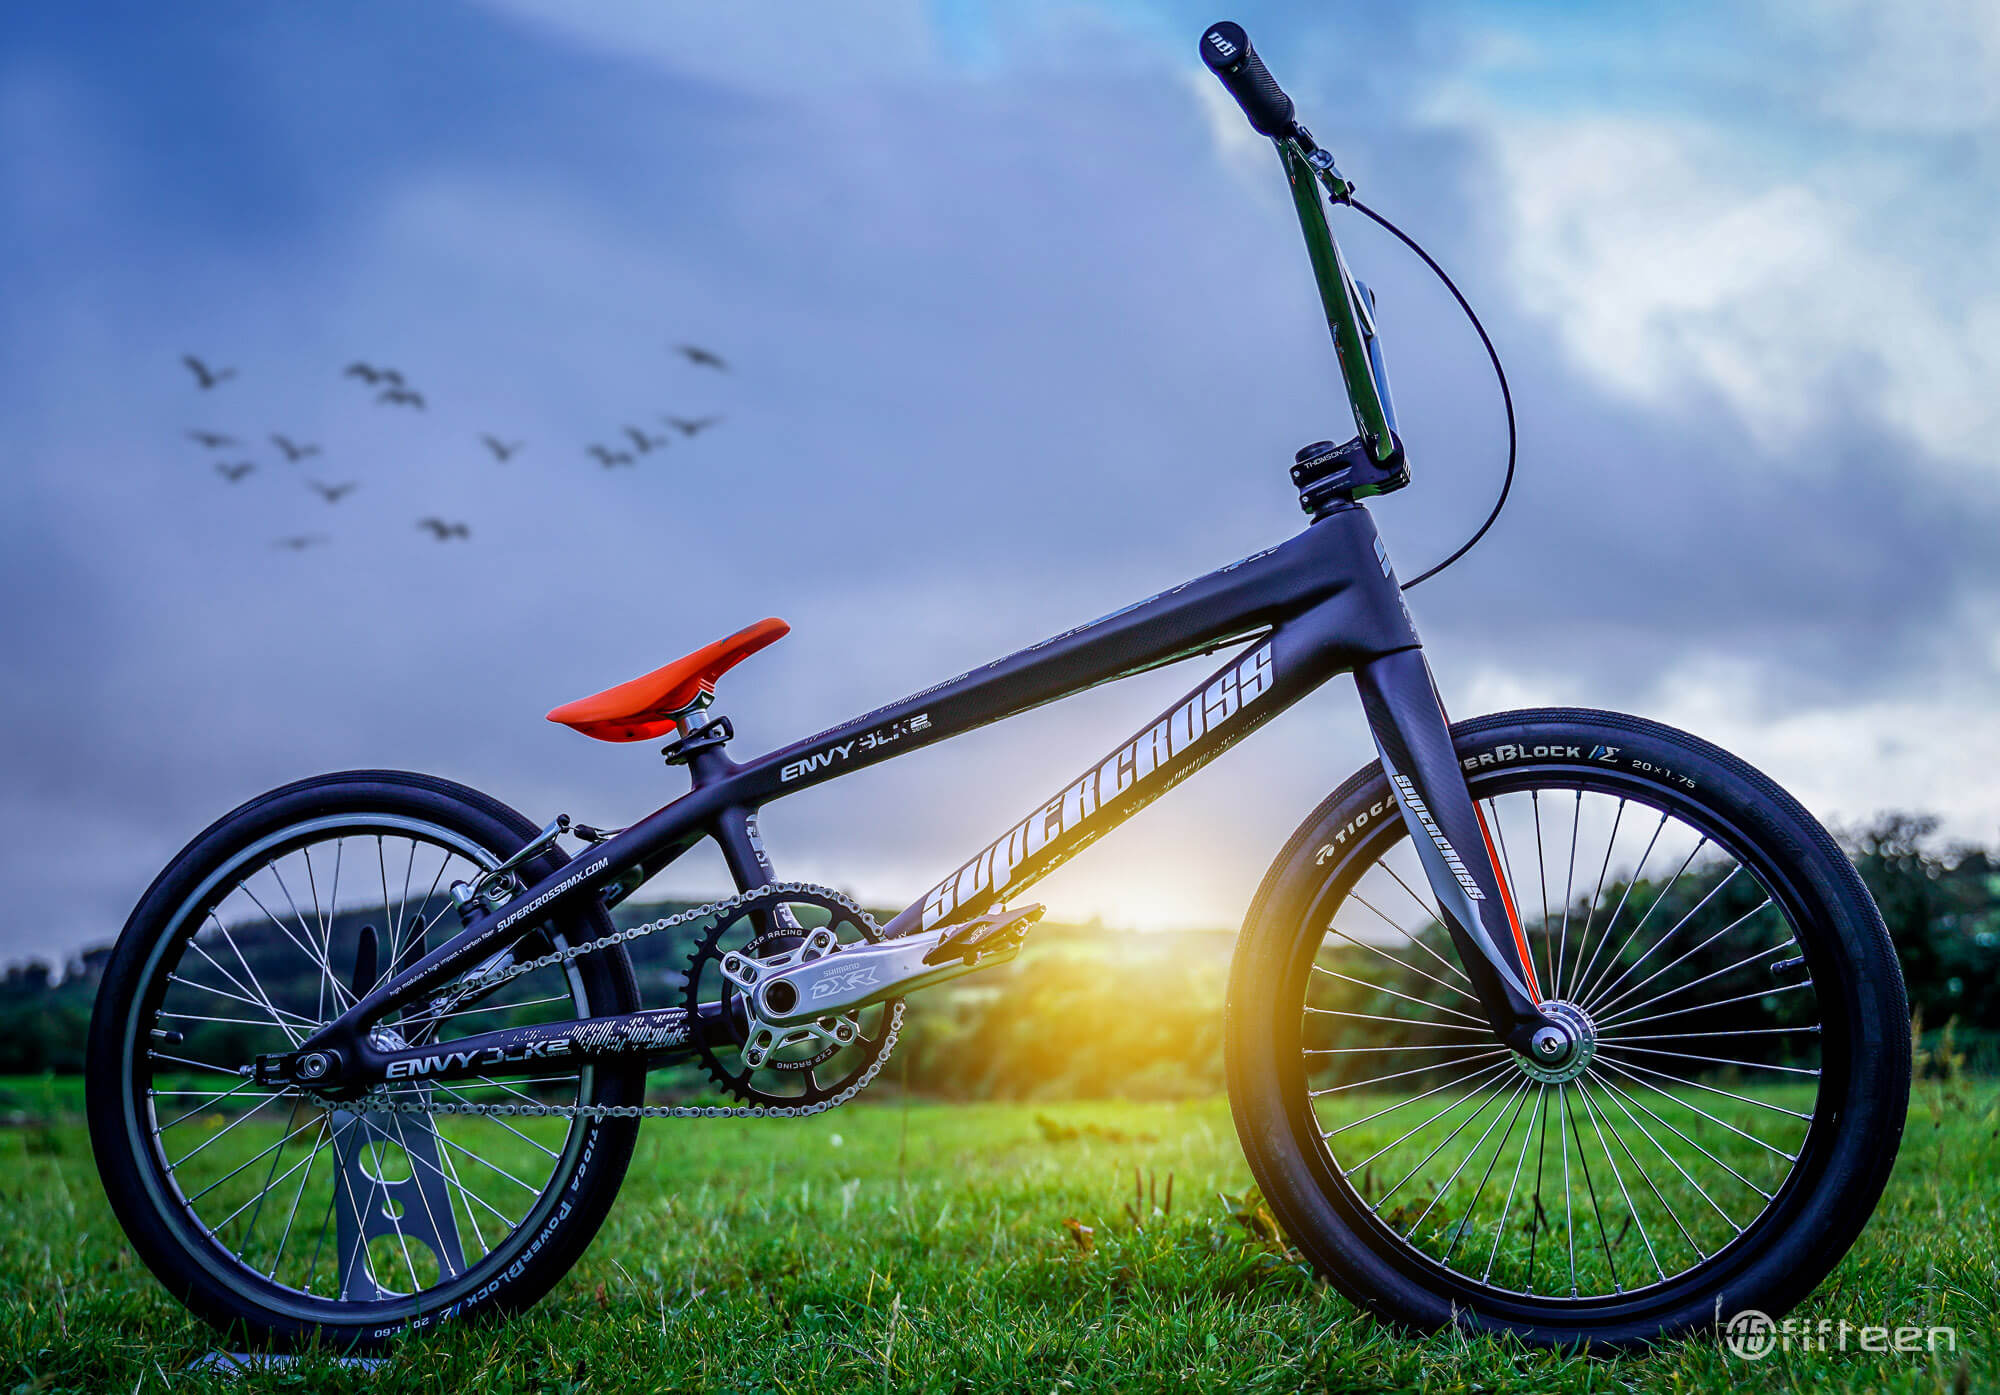 Supercross Envy BLK 2 Review - Side Profile - Fifteen BMX